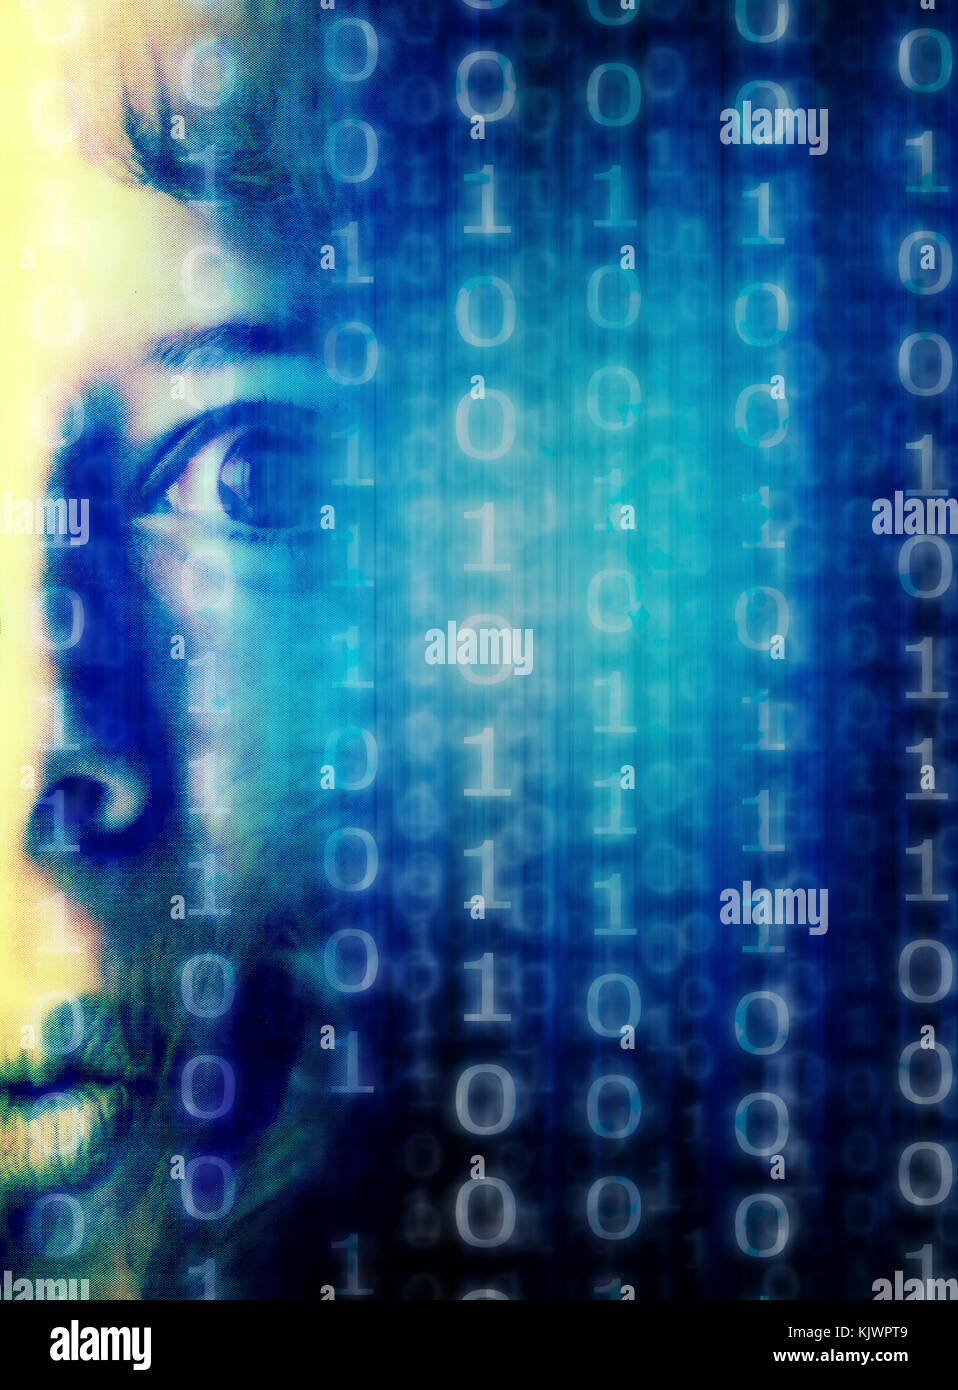 woman face and binary digits, pixelated effect - Stock Image